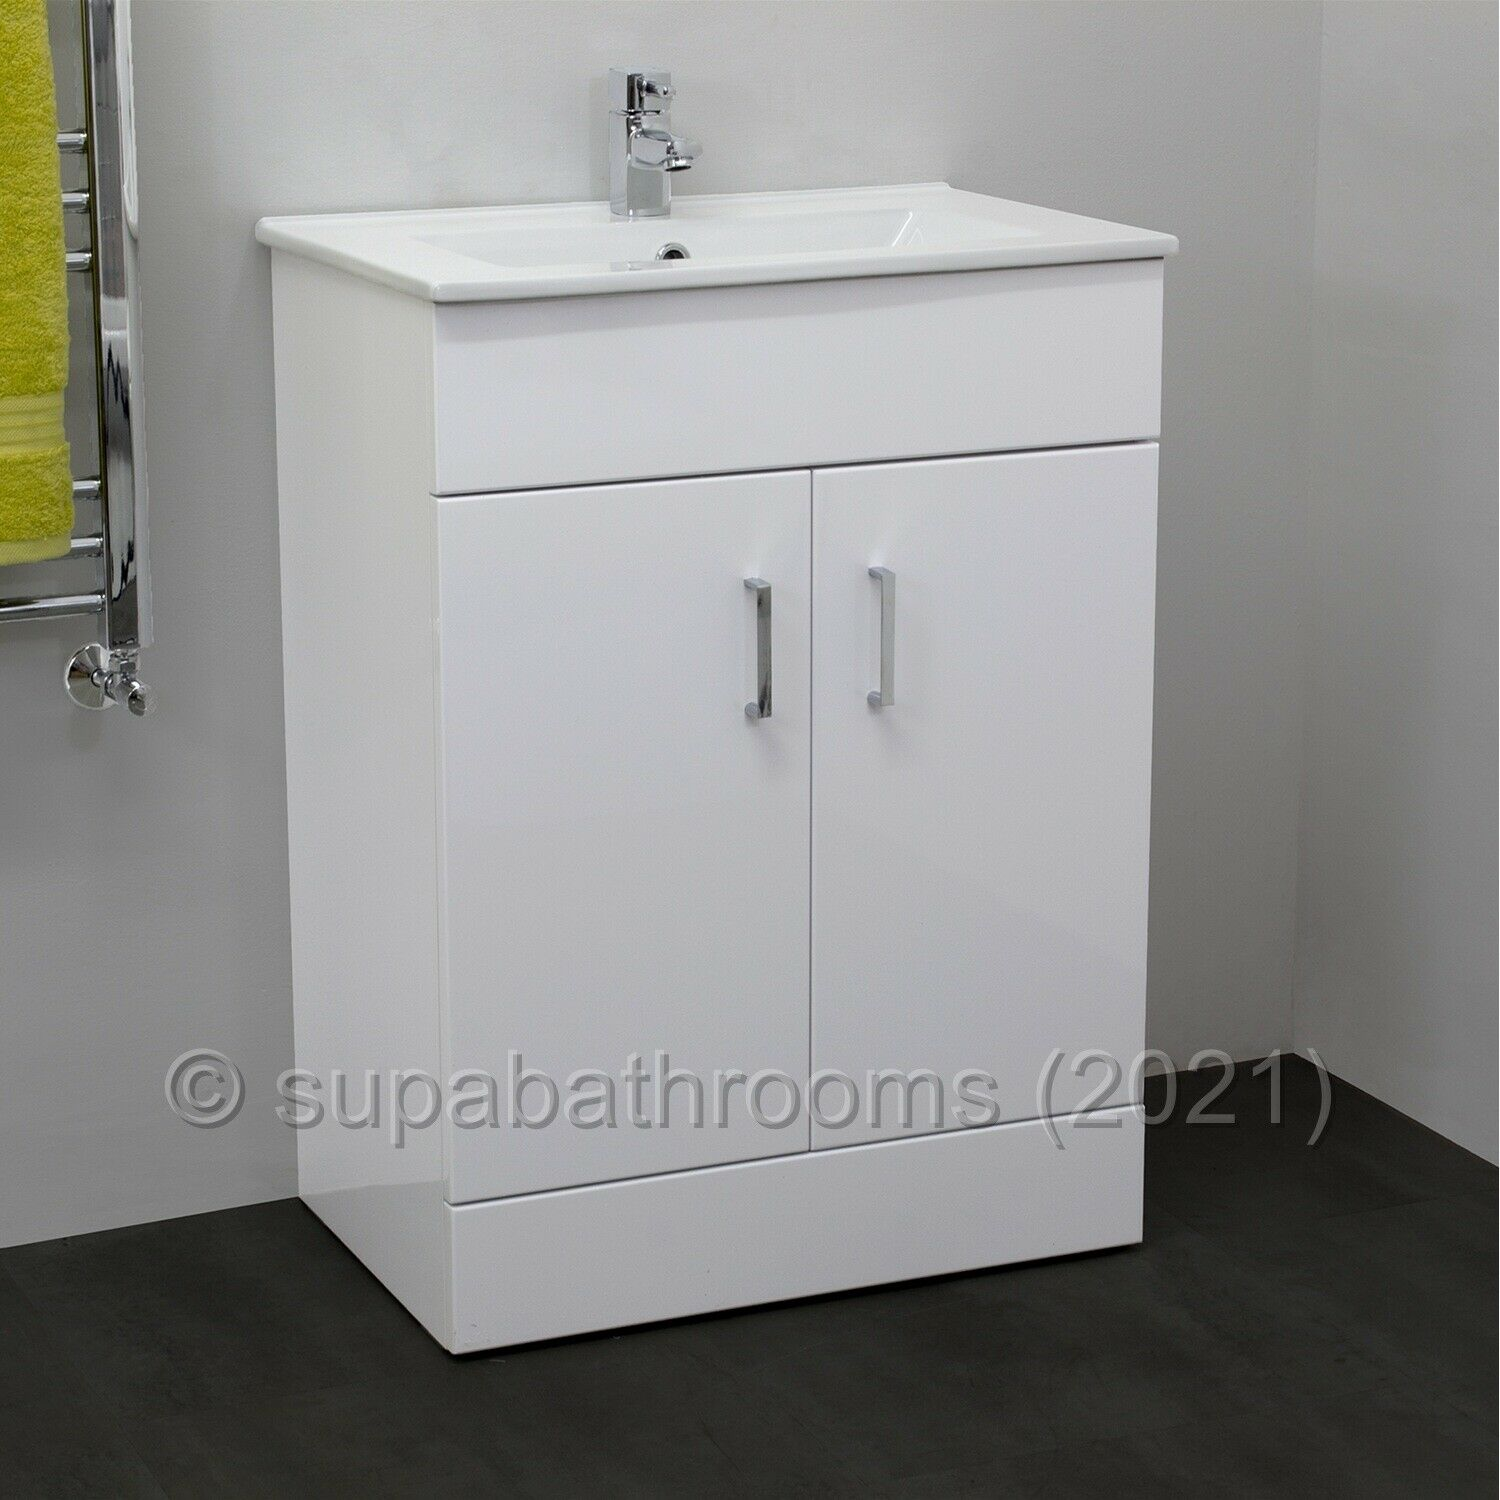 Bathroom 600mm Turin Vanity Unit Ceramic Basin Sink